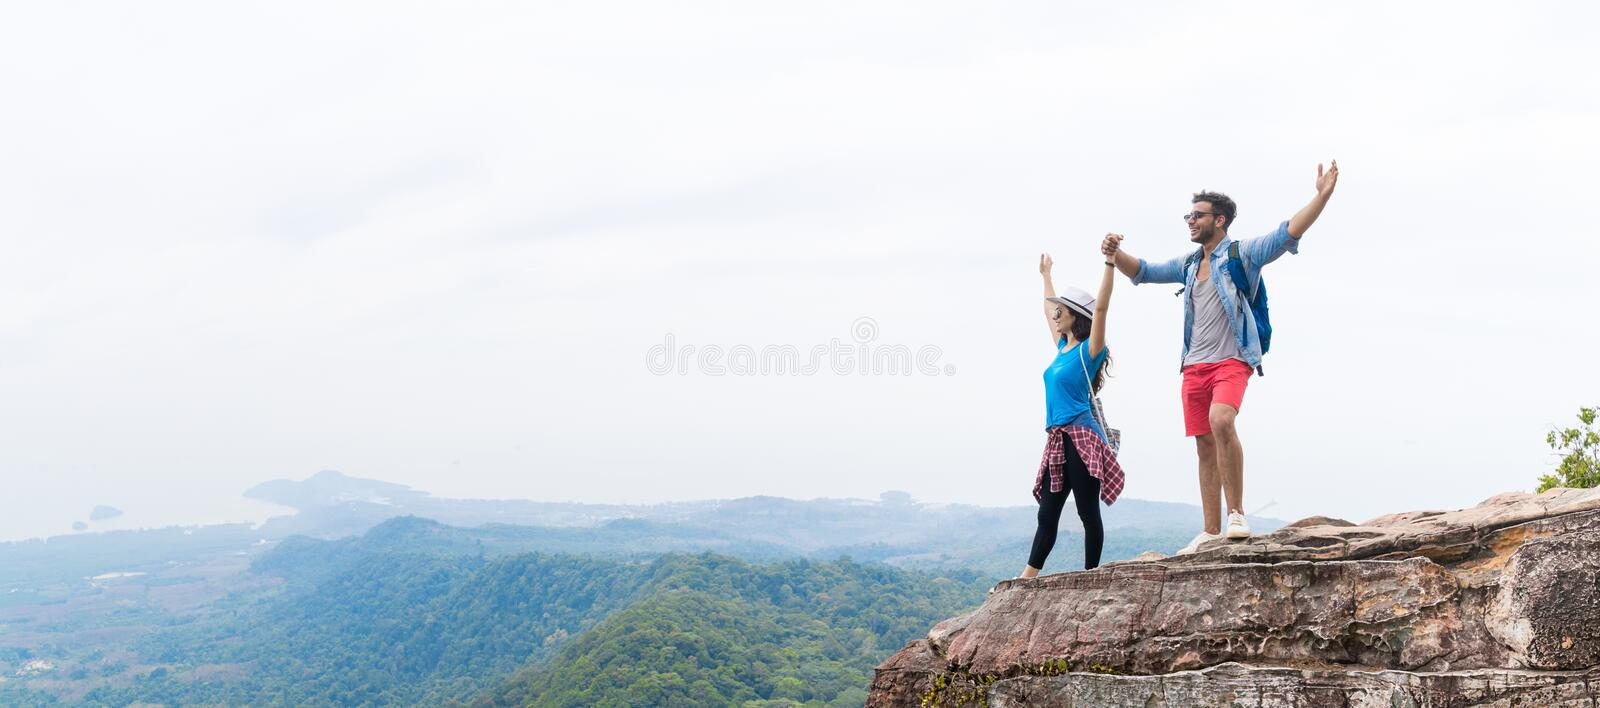 Tourist Couple With Backpack Holding Hands Raised On Mountain Top Enjoy Beautiful Landscape Panorama royalty free stock photography